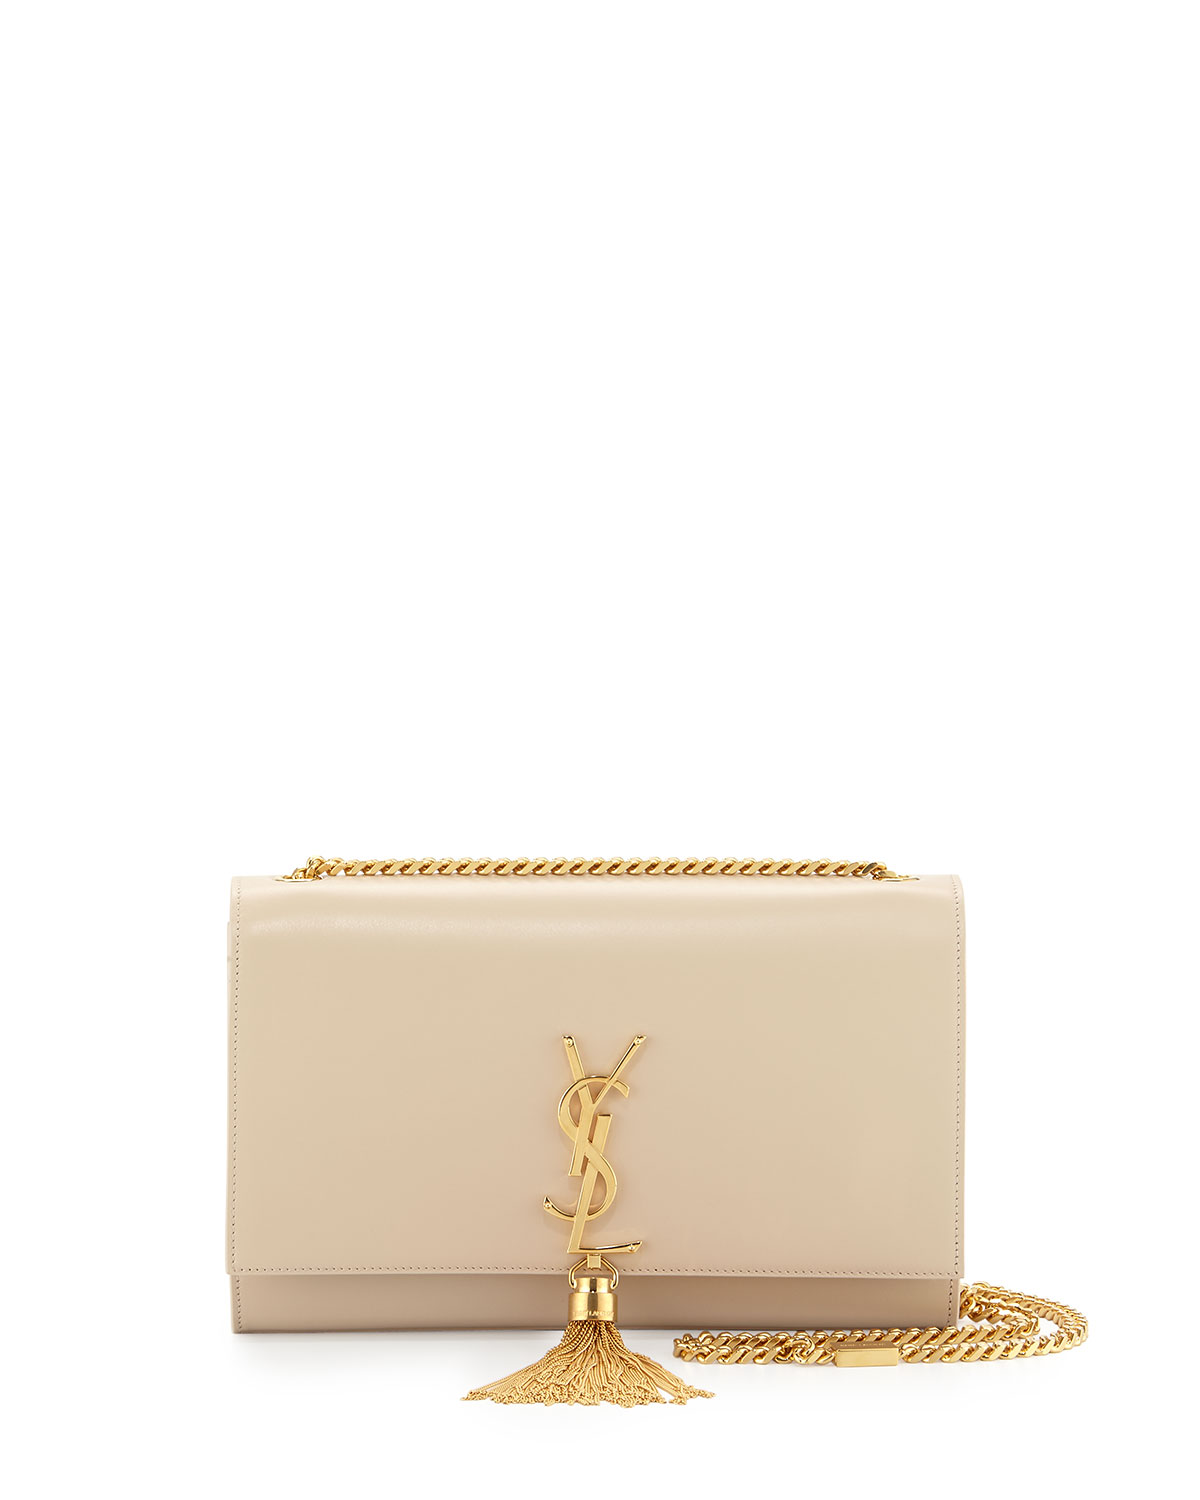 Saint Laurent Monogram Medium Tassel Crossbody Bag 941e7c379a1ab